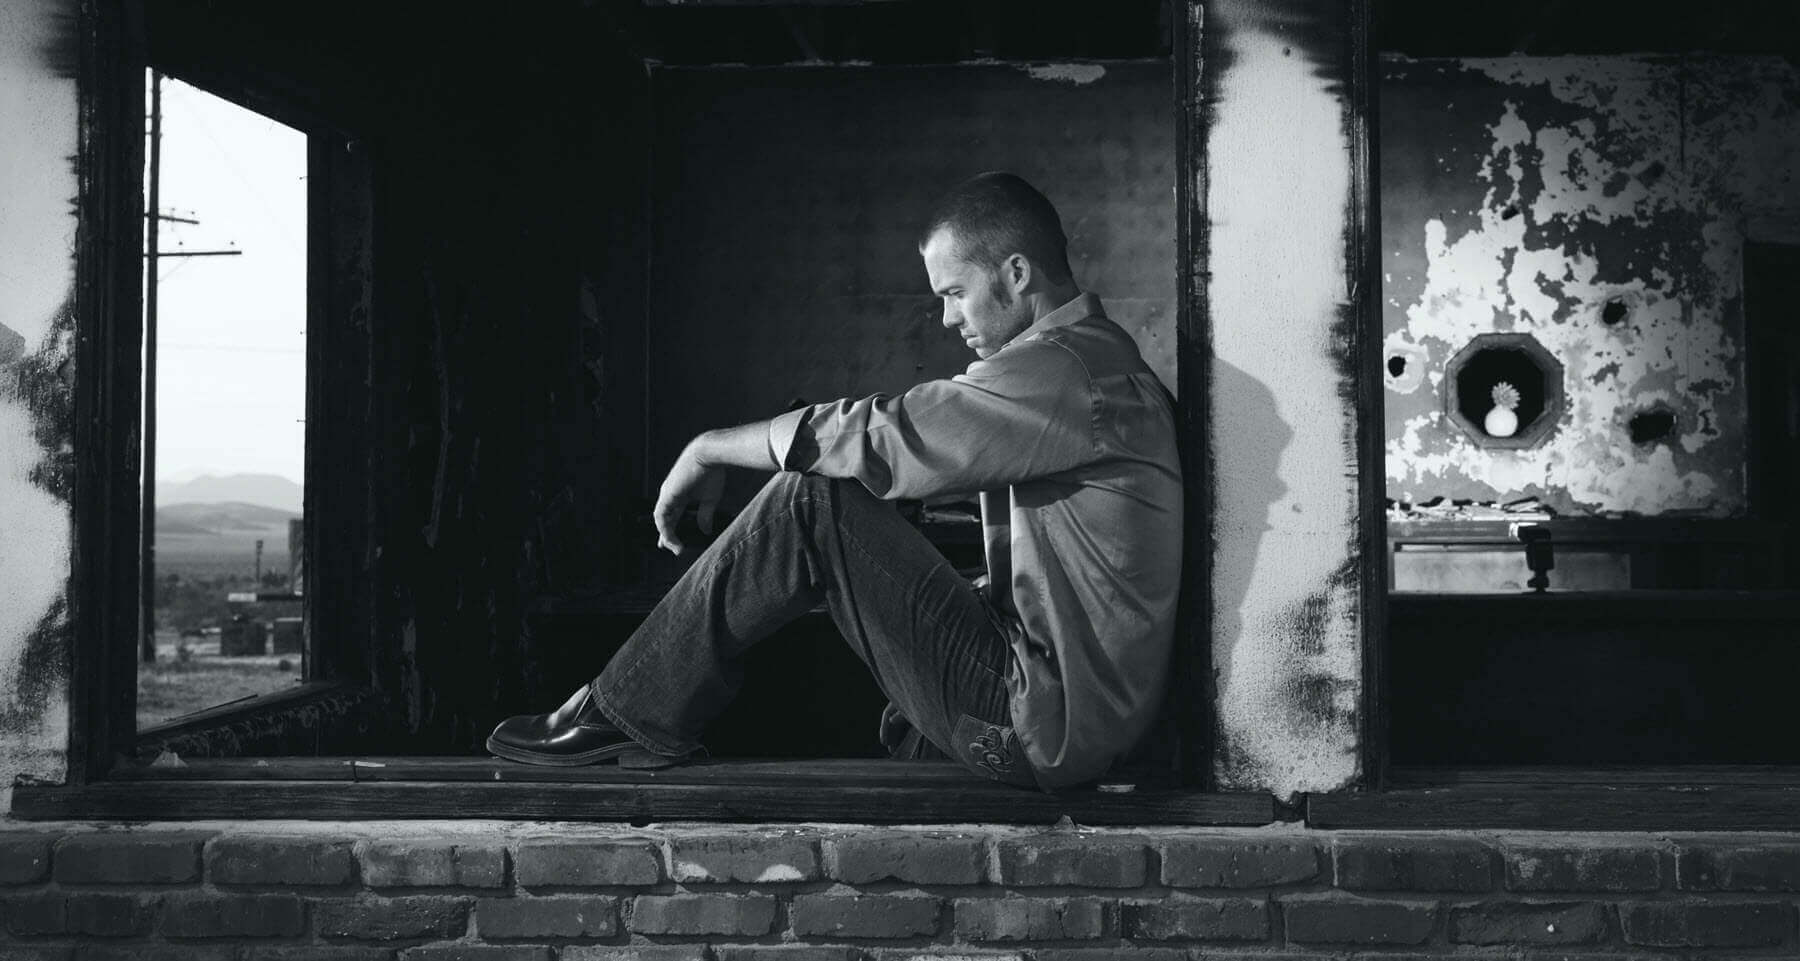 Guy leaning against a wall looking down depressed